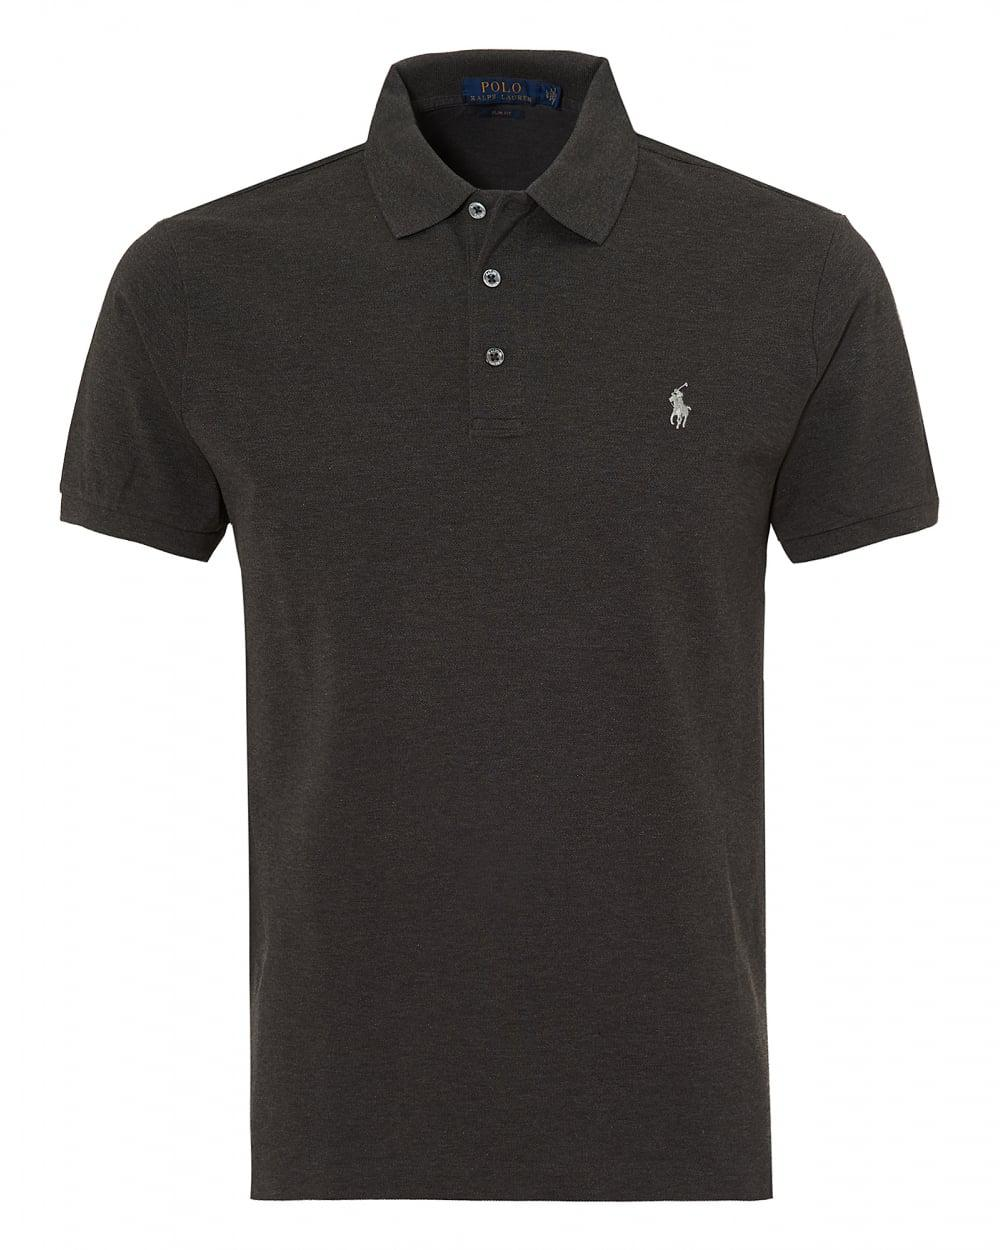 Lyst Ralph Lauren Charcoal Plain Mesh Polo Stretch Grey